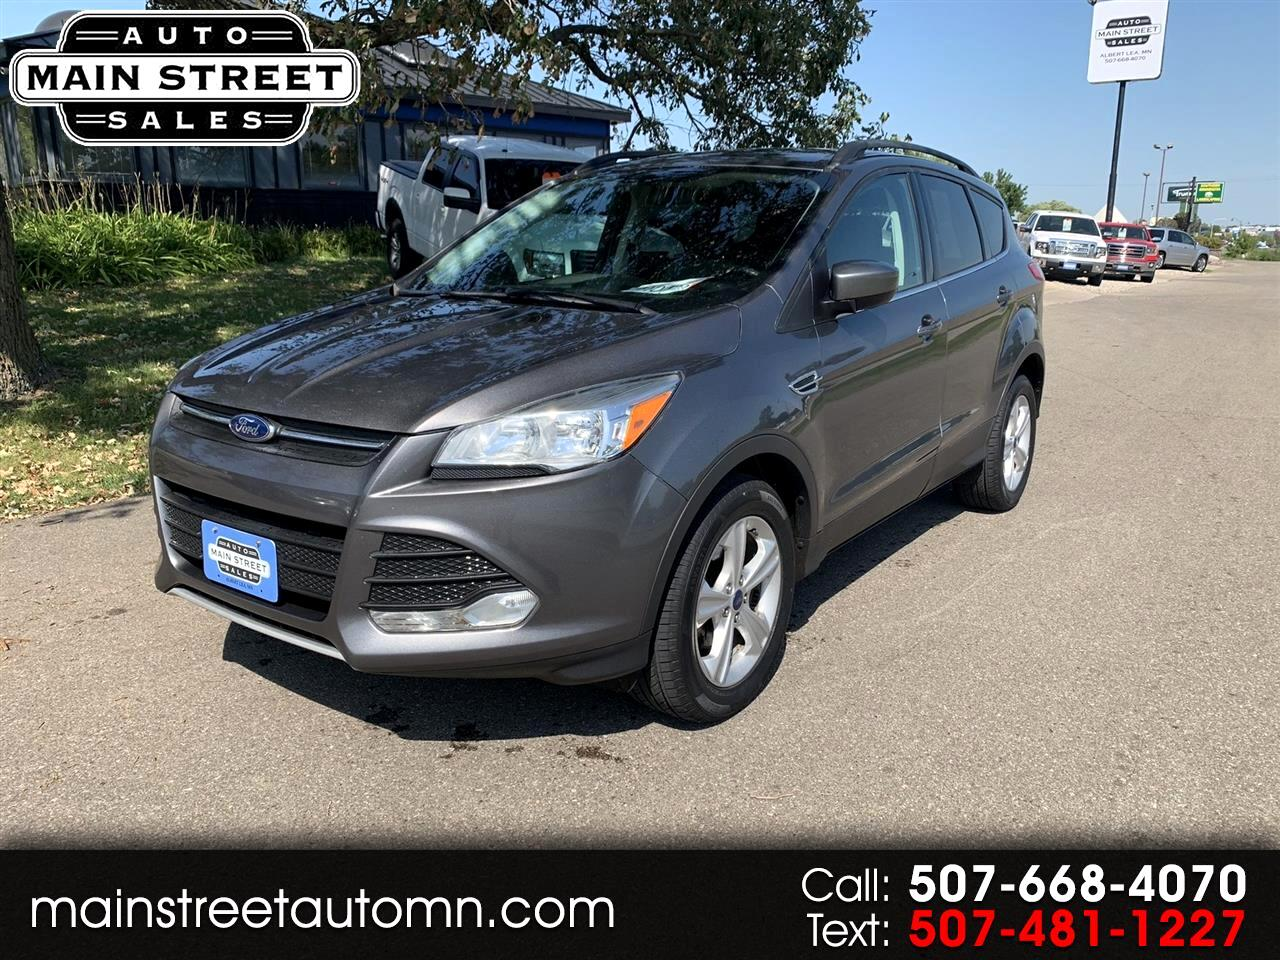 Ford Escape EcoBoost EcoBoost 2014